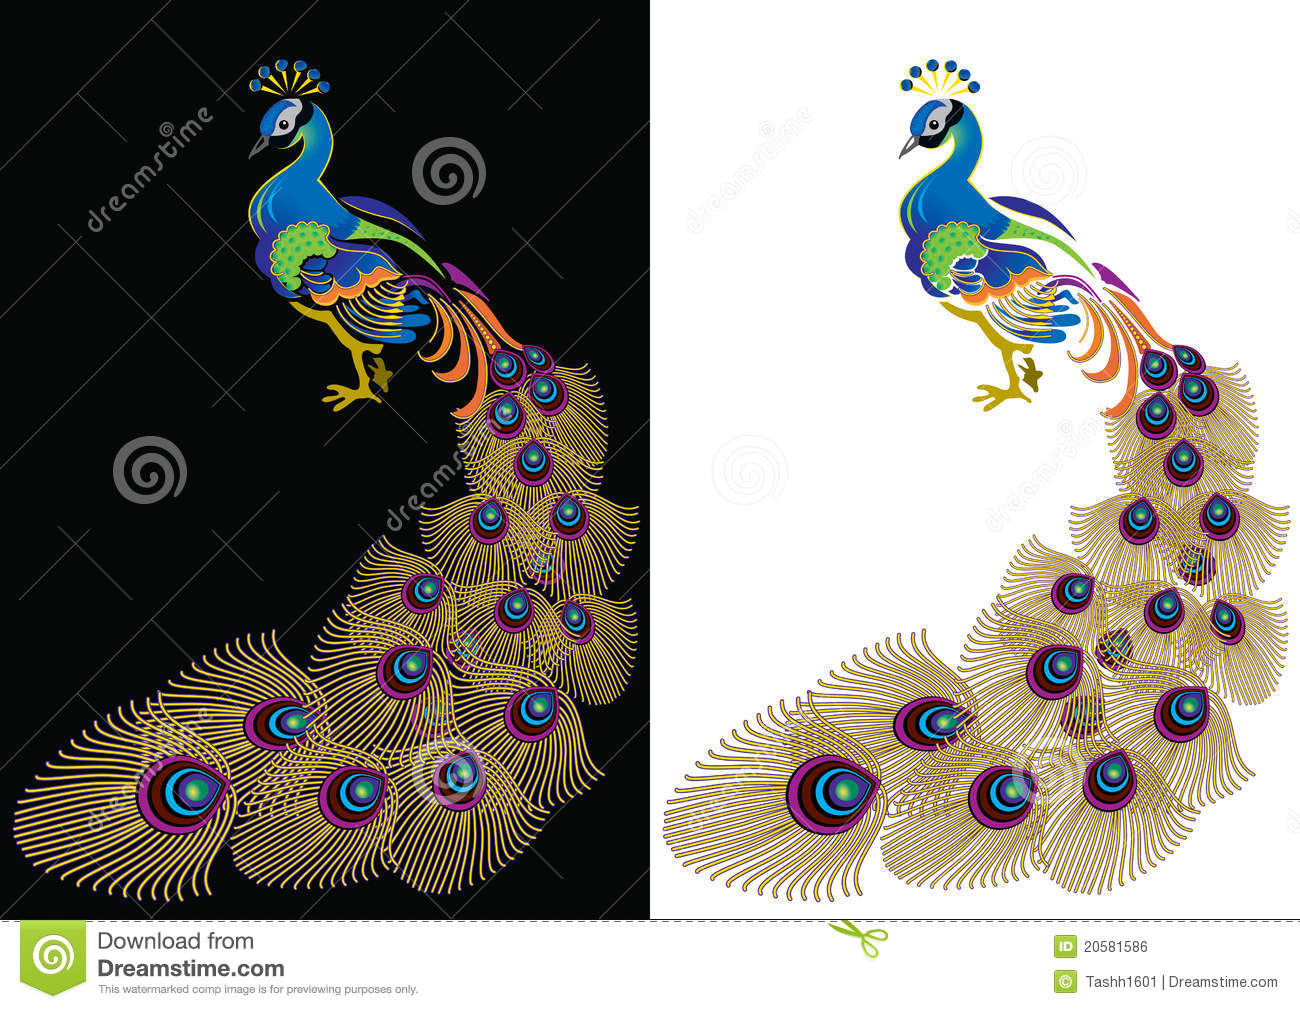 Peacock Royalty Free Stock Image Image 20581586